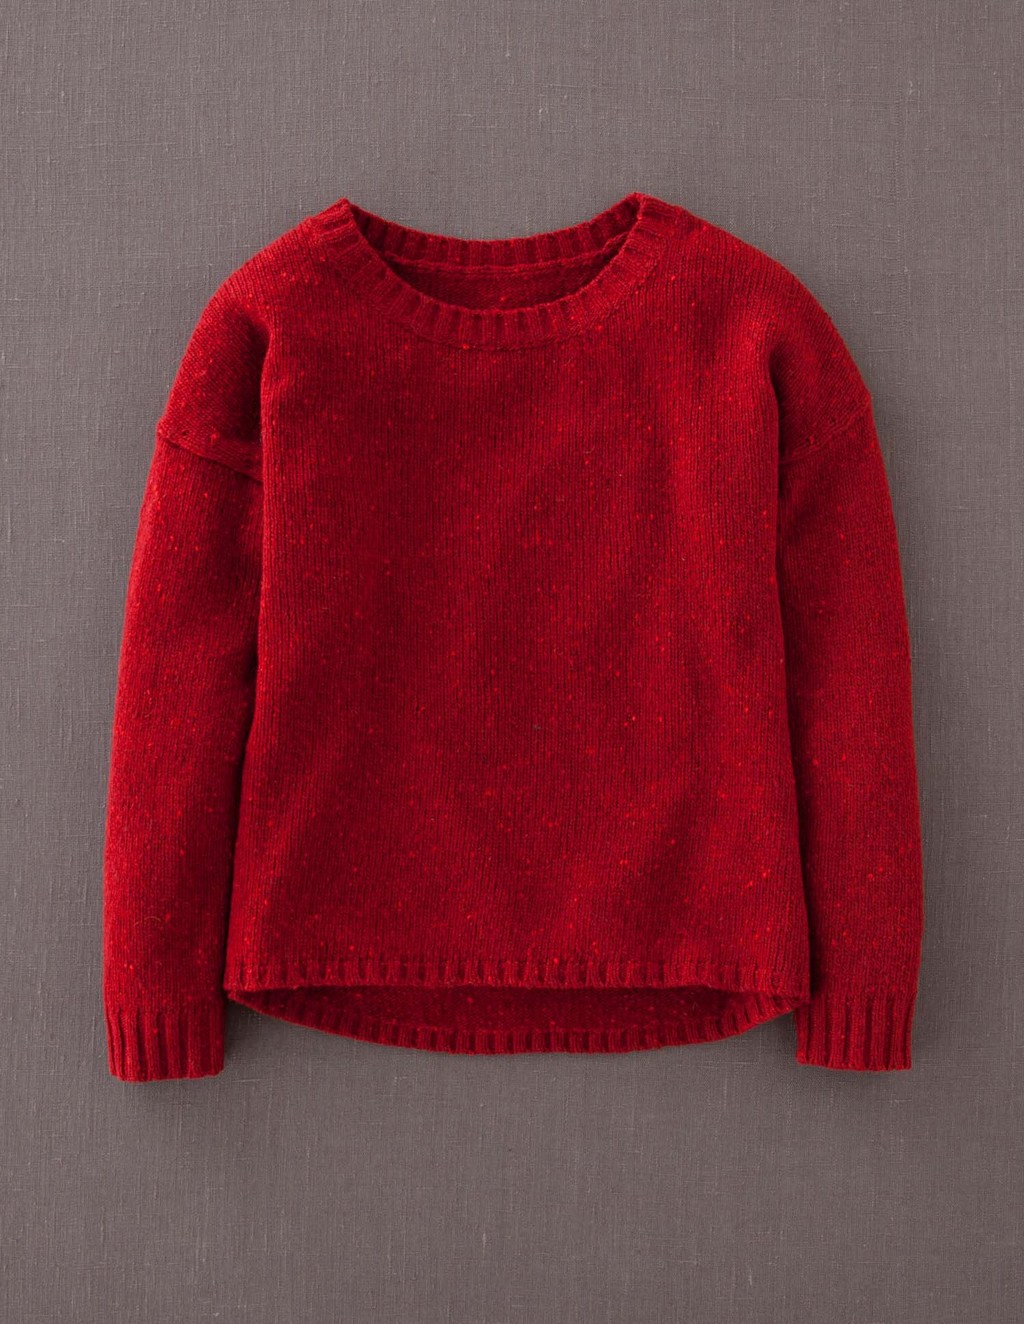 Skye Jumper - pattern: plain; style: standard; predominant colour: true red; occasions: casual; length: standard; fibres: wool - mix; fit: standard fit; neckline: crew; sleeve length: long sleeve; sleeve style: standard; texture group: knits/crochet; pattern type: knitted - fine stitch; season: a/w 2013